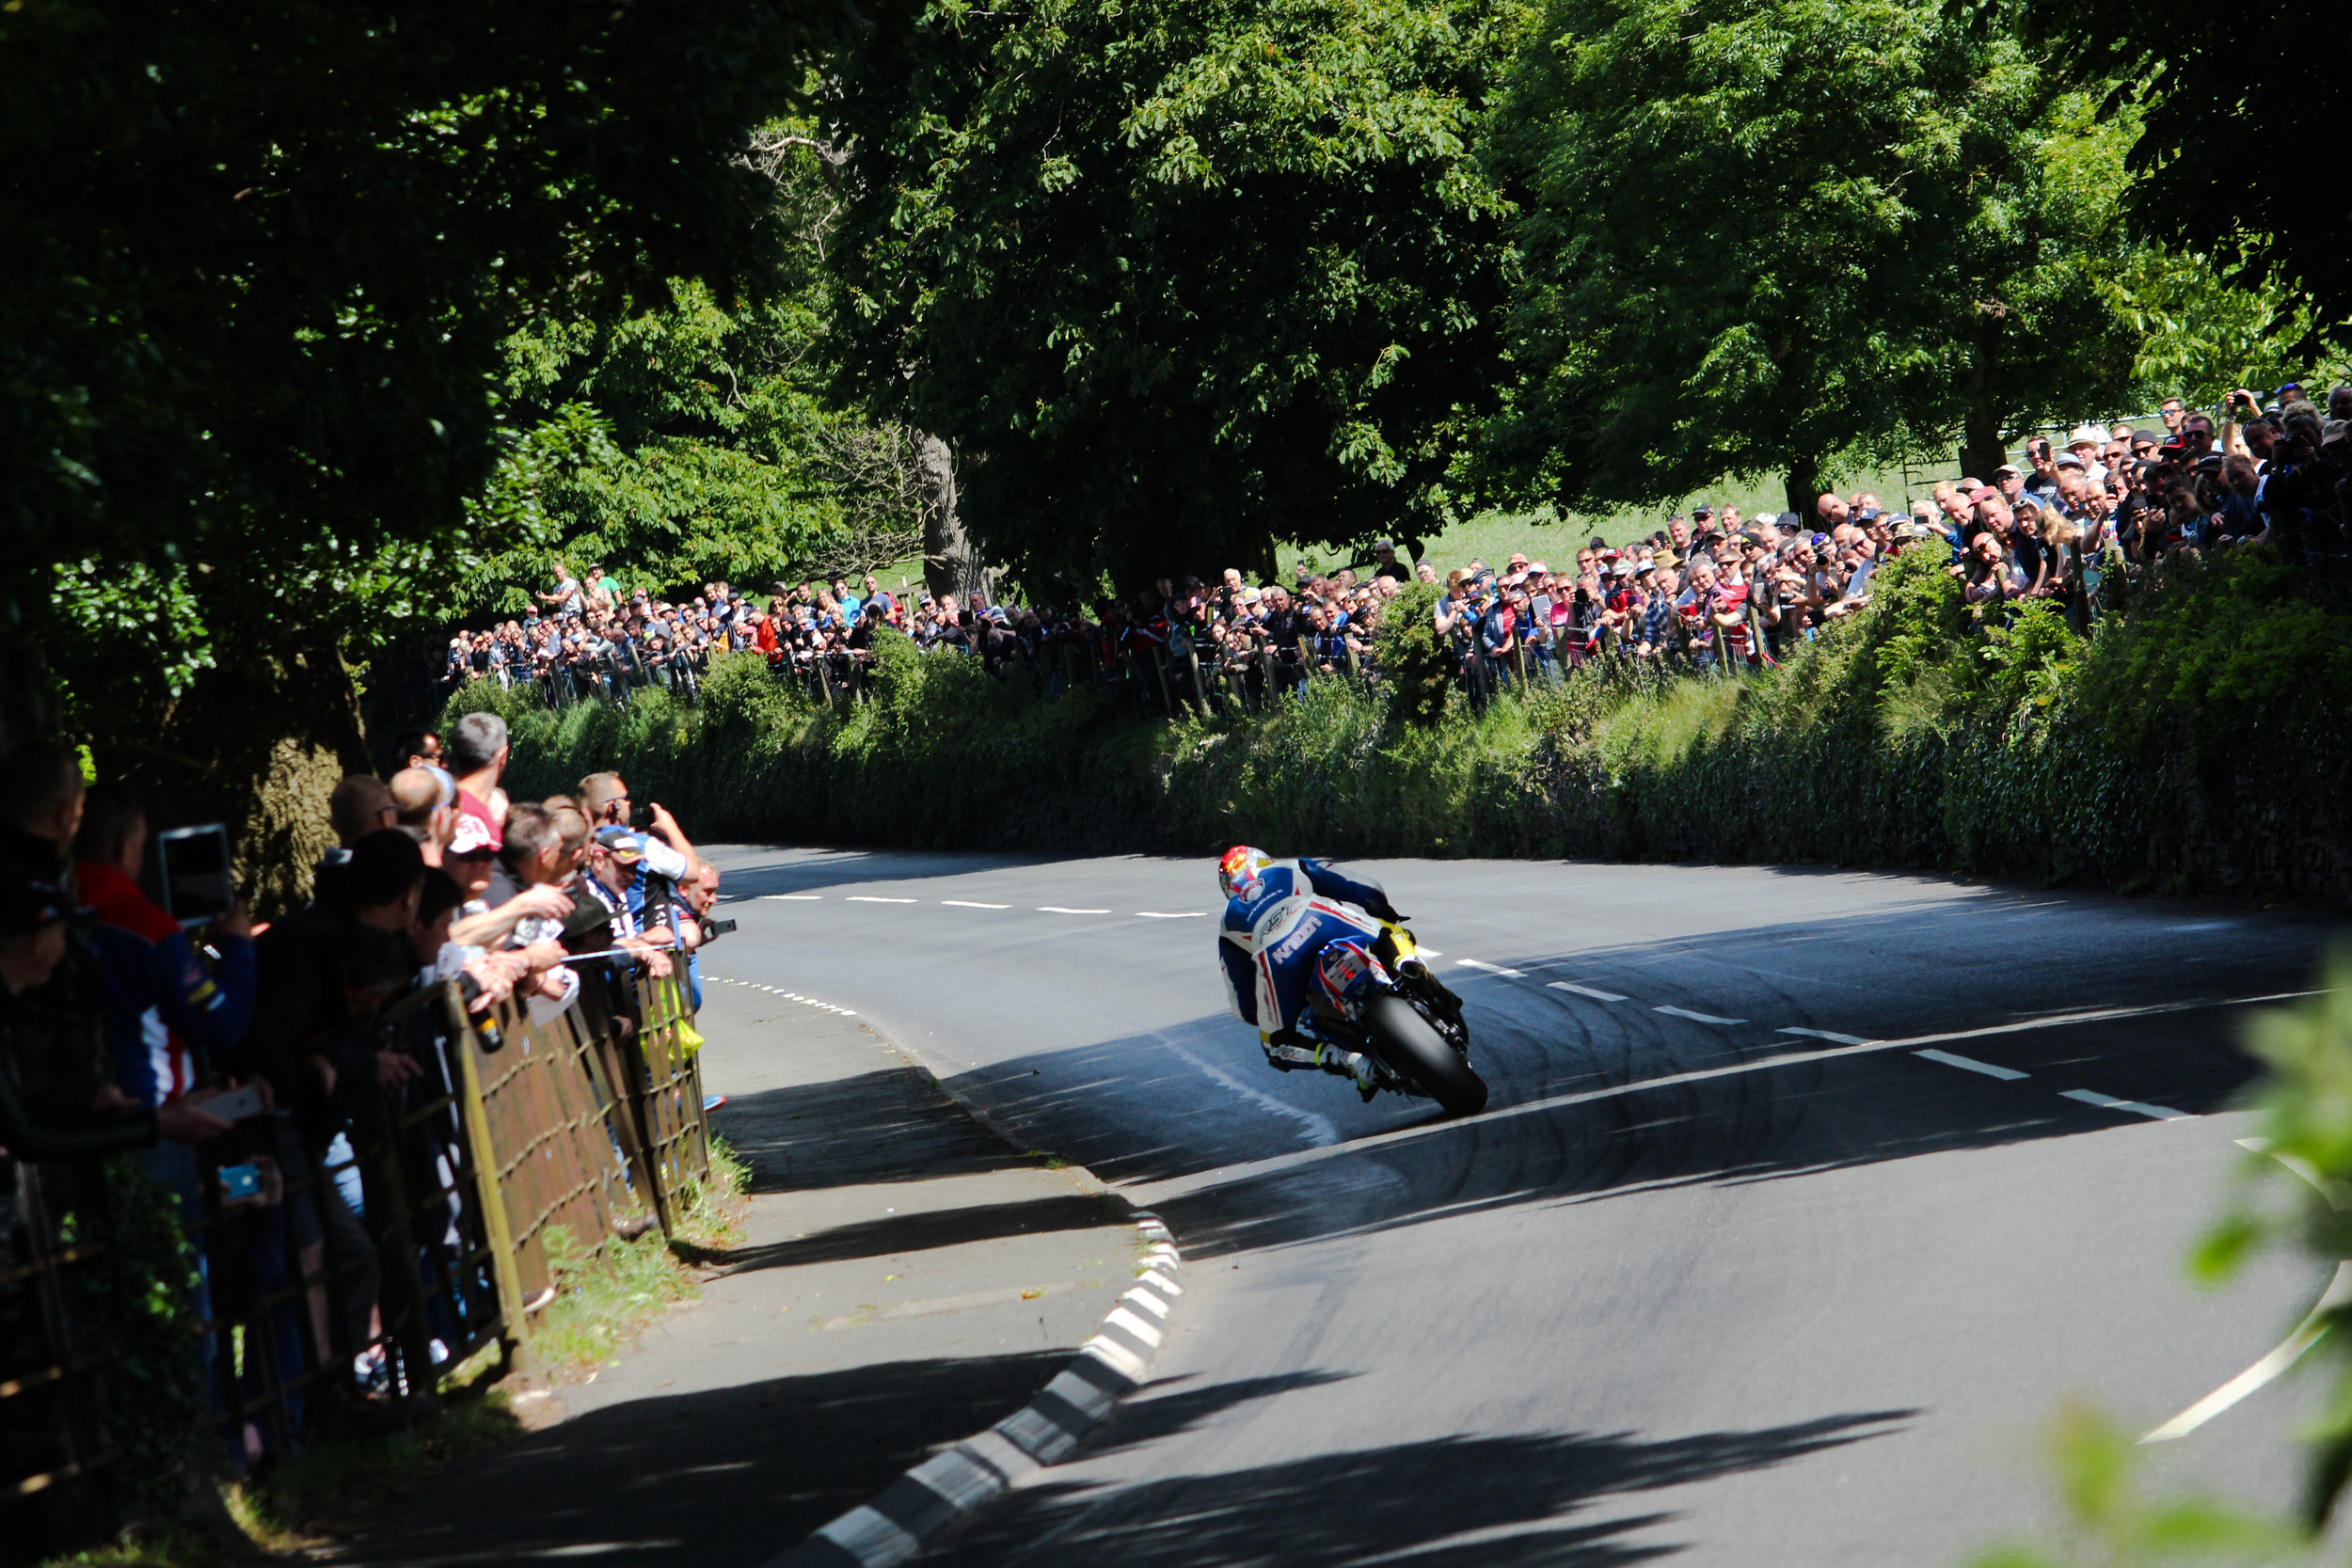 A sunny day Conker Fields... not a bad setting to take in a motorcycle race.  Neundorf photo